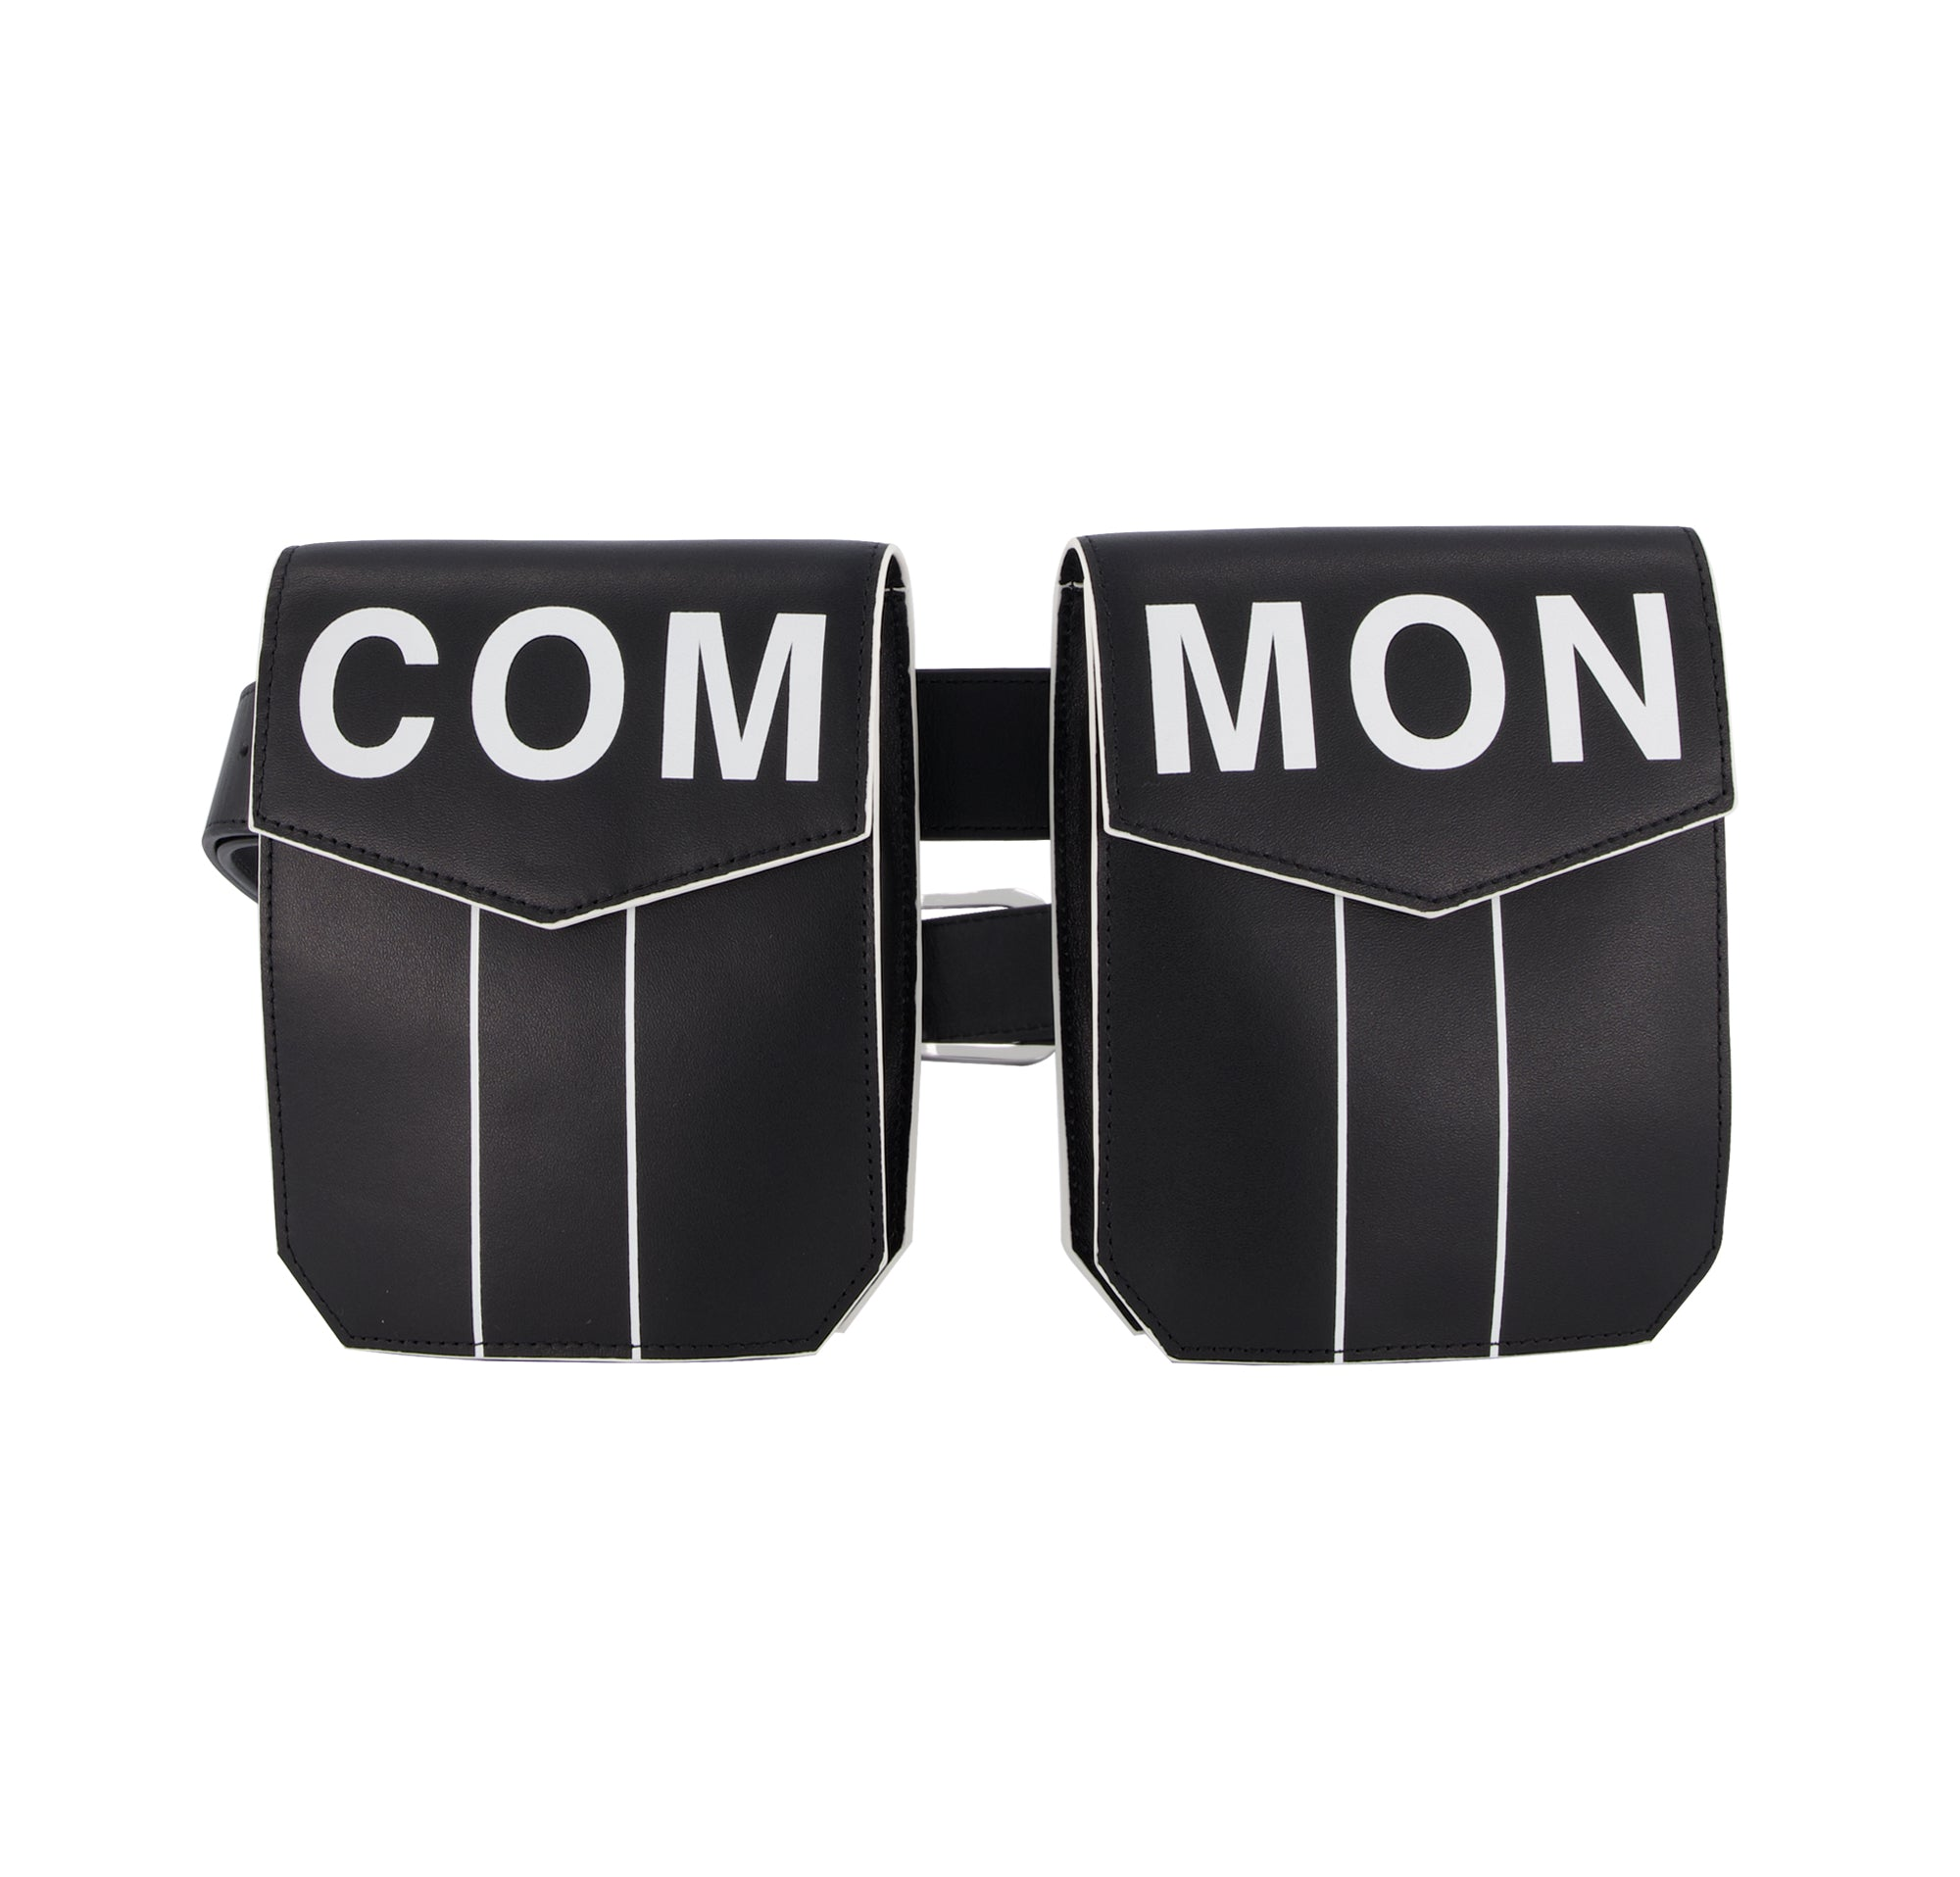 Common People Black Leather Belt Bag